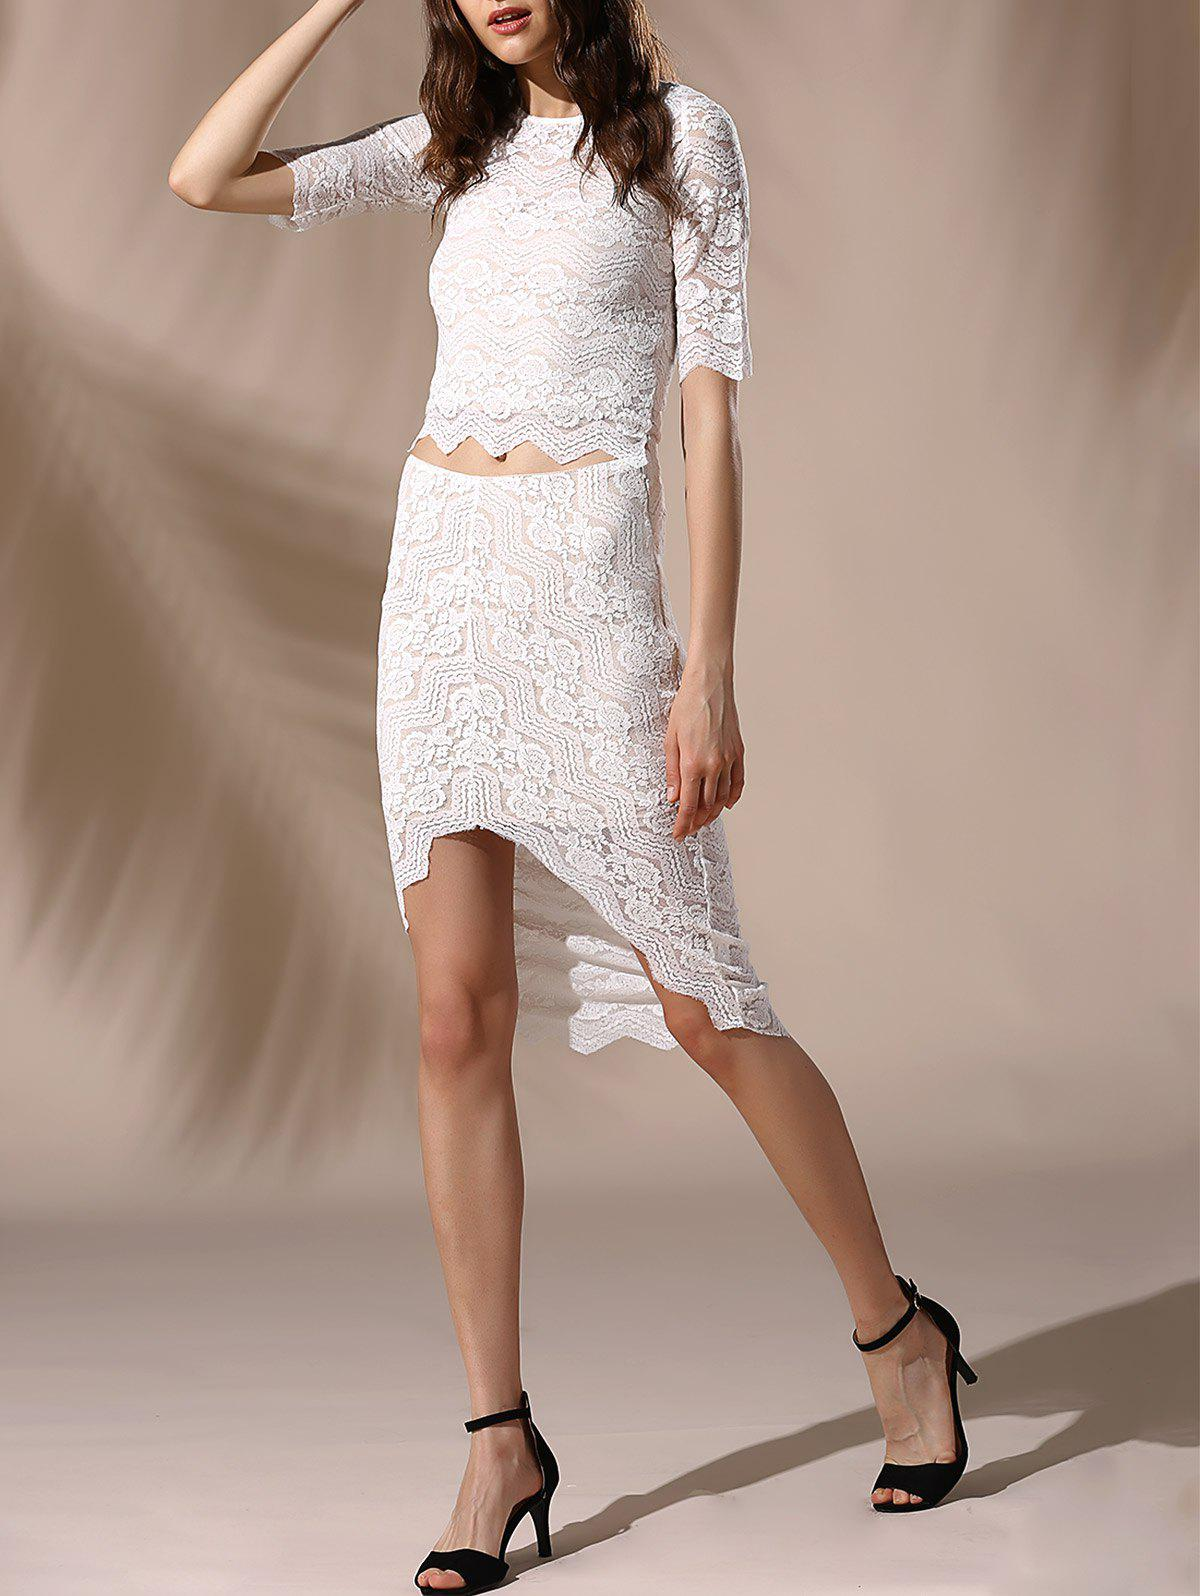 Chic Round Neck Skinny Crop Top + Lace Asymmetrical Skirt Women's Twinset